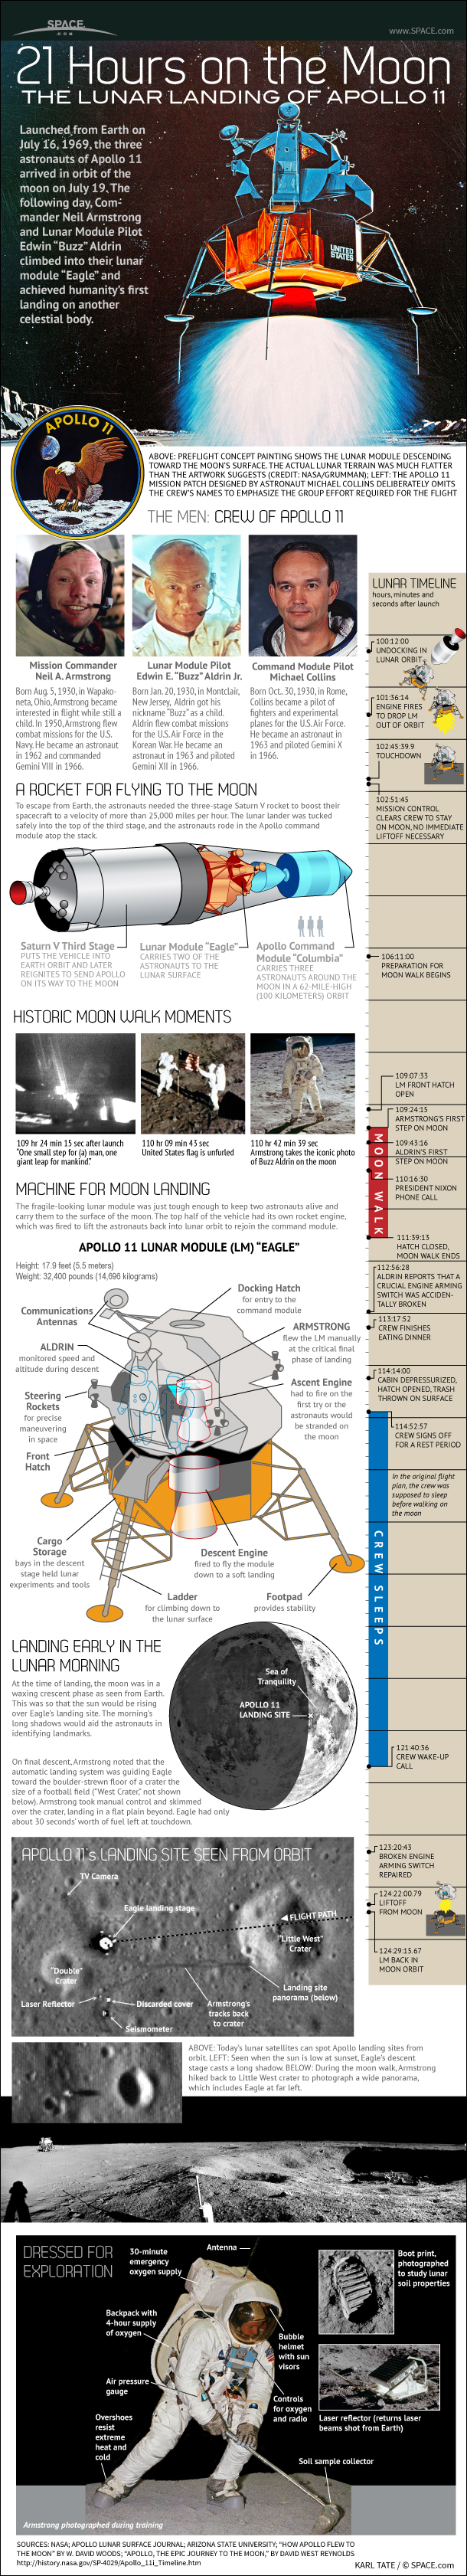 How the Apollo 11 Moon Landing Worked (Infographic)